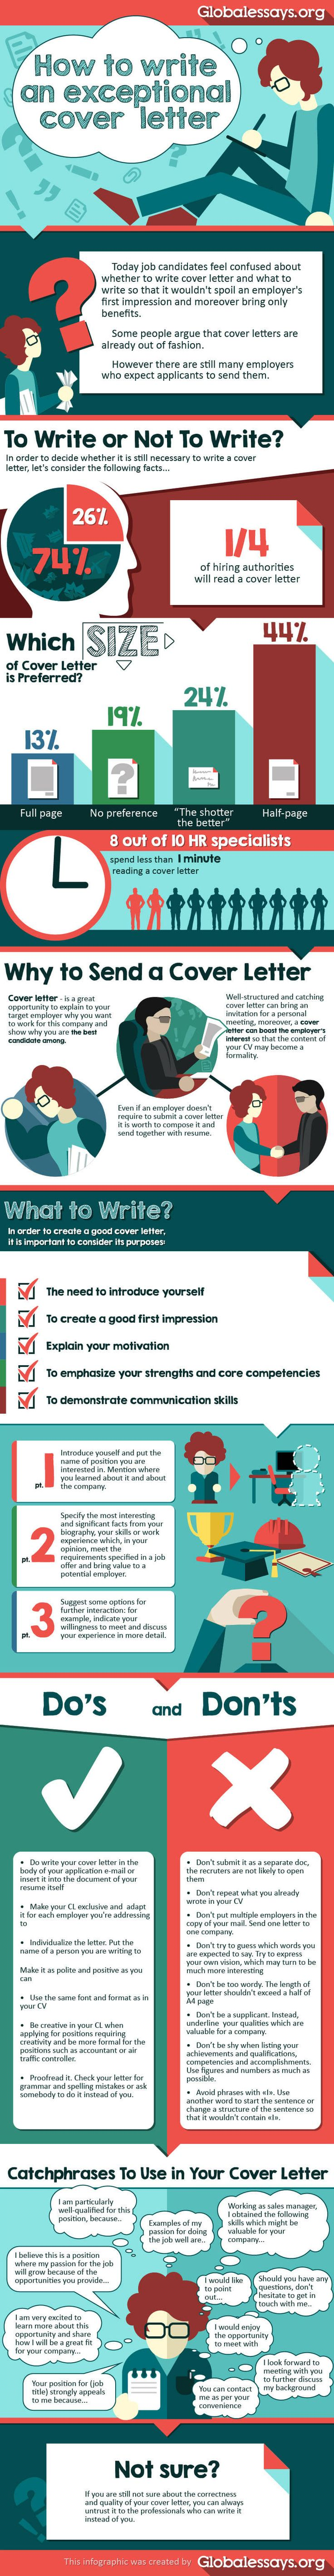 Best 25 Employment Cover Letter Ideas On Pinterest Cover Letter